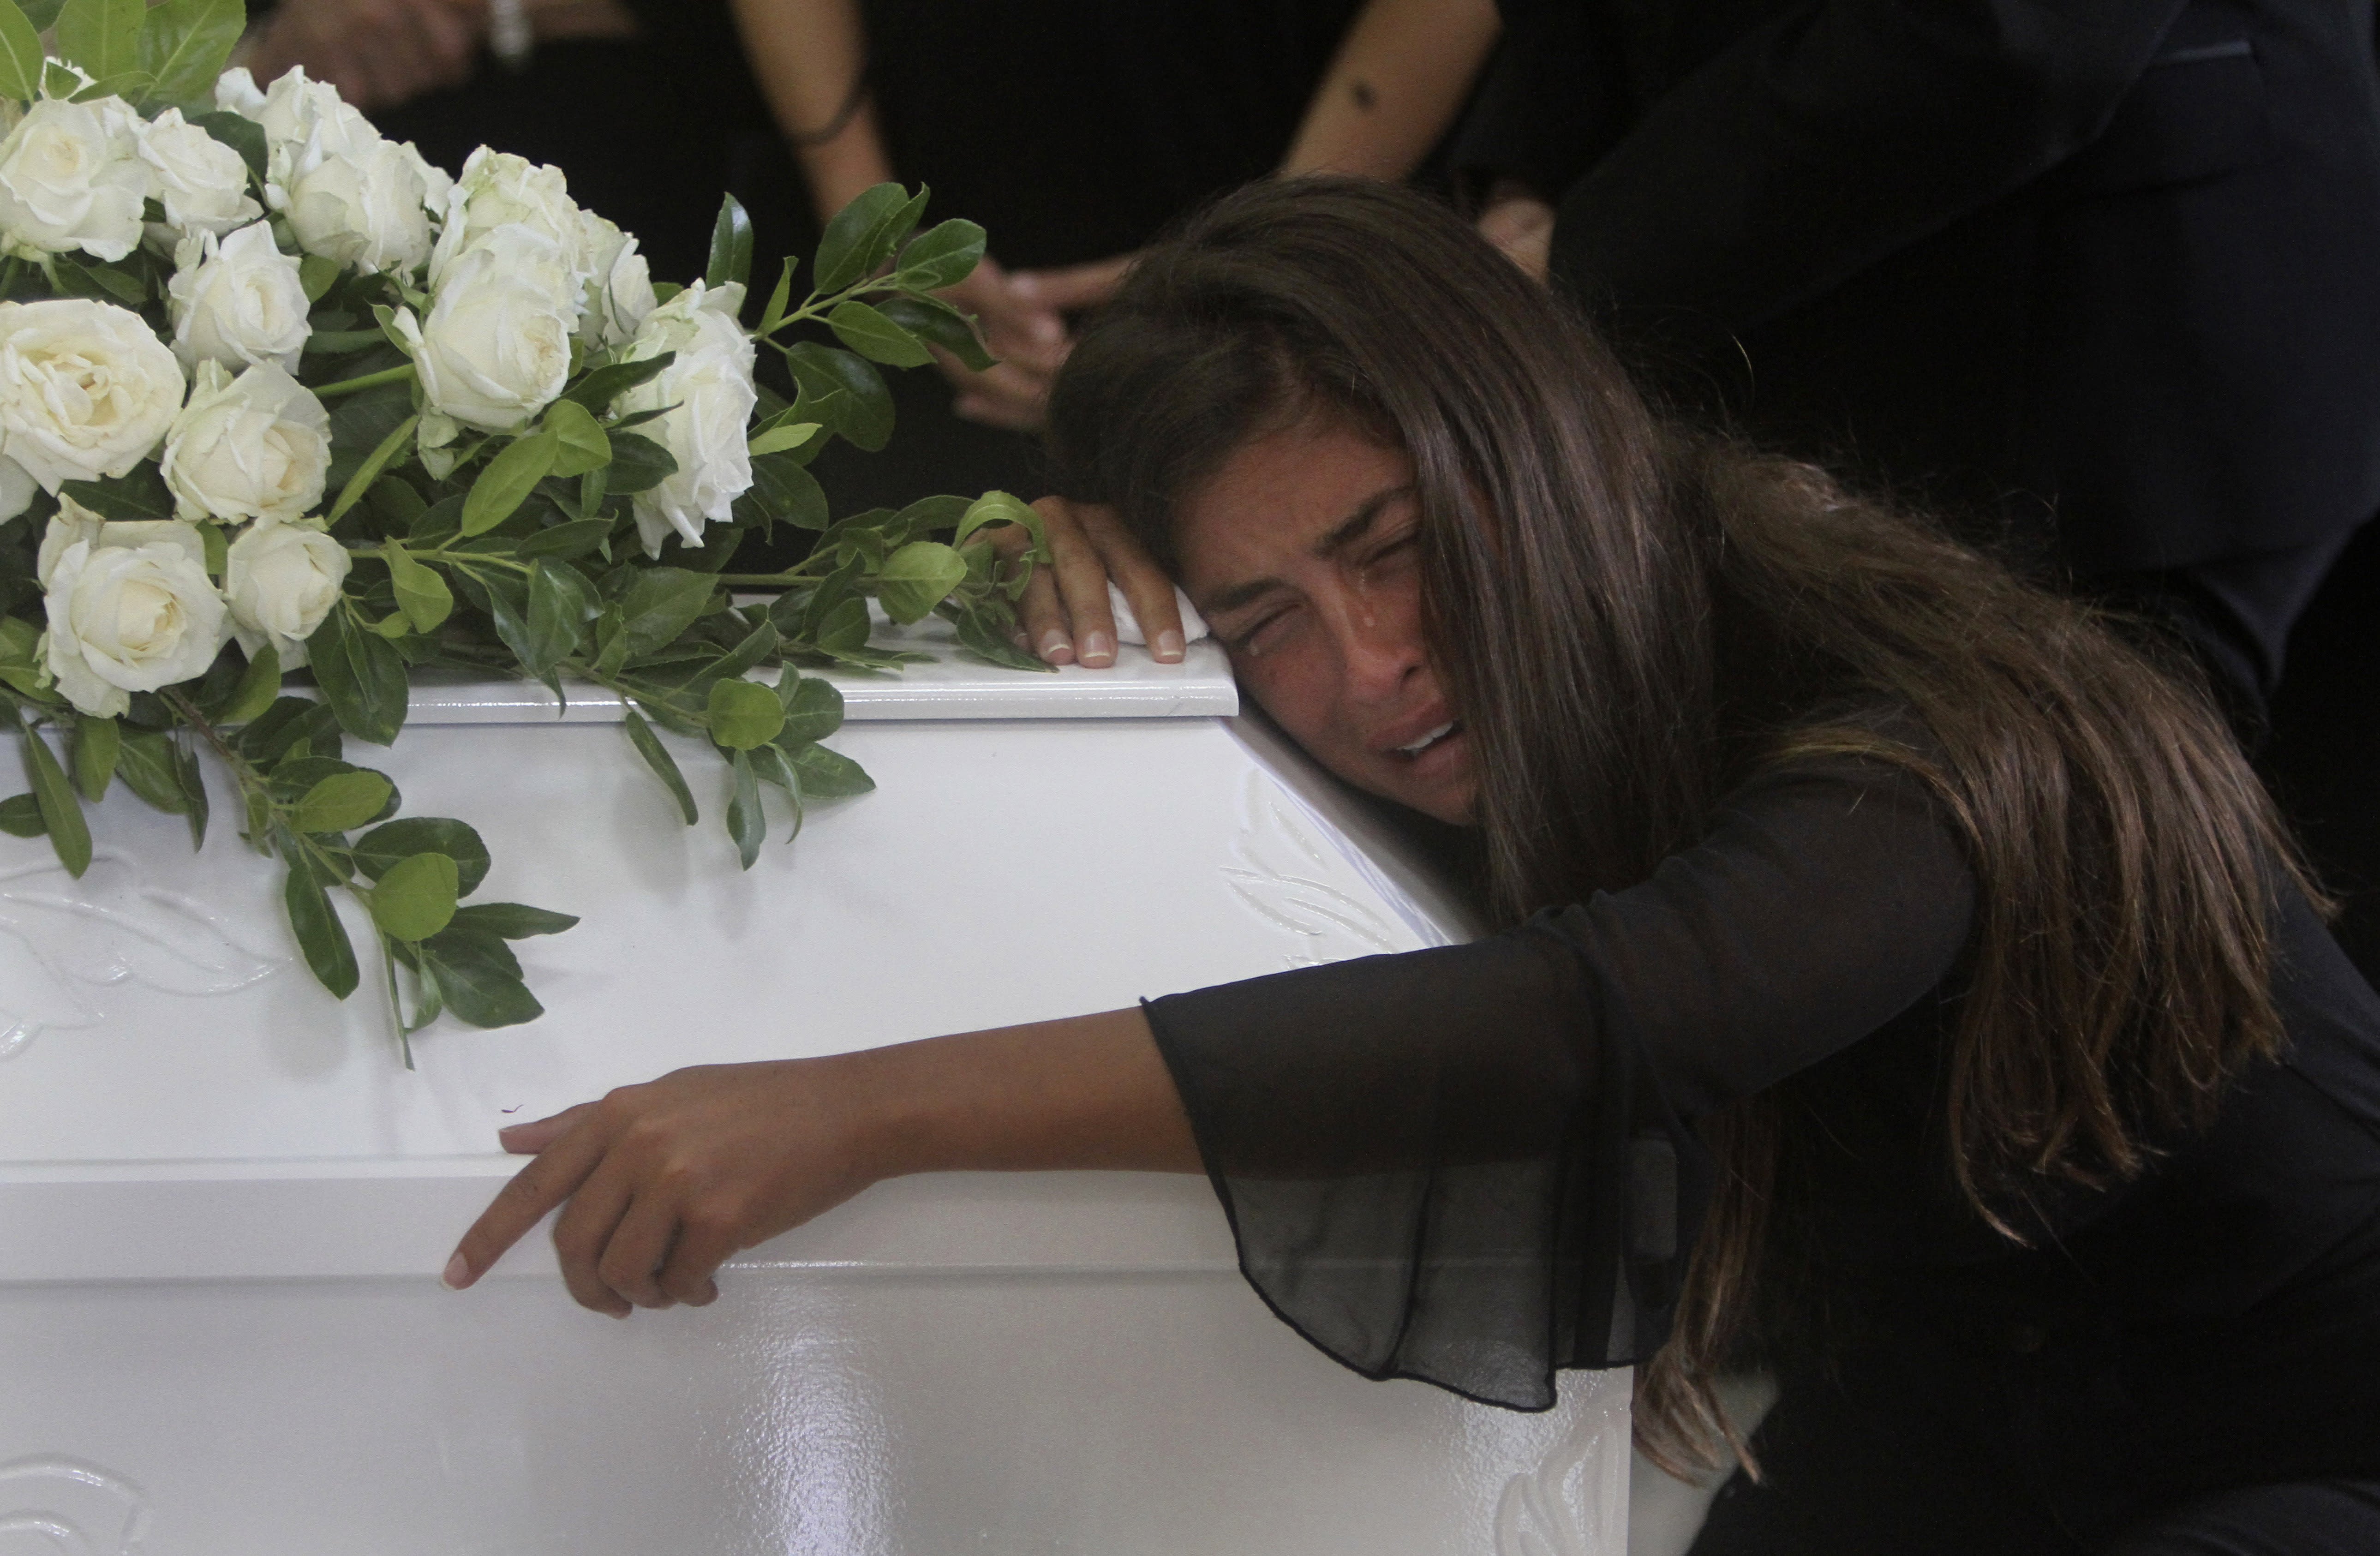 """The sister of Nicole al-Helou, who was killed by the explosion Tuesday that hit the seaport of Beirut, mourns on her coffin during her funeral, in Sarba village, southern Lebanon, Thursday, Aug. 6, 2020. French President Emmanuel Macron said an independent, transparent investigation into the massive explosion in Beirut is """"owed to the victims and their families"""" by Lebanese authorities. During Macron's visit to the city on Thursday, angry crowds approached him and the Beirut governor as they walked through a blast-torn street. (AP Photo/Mohammed Zaatari)"""